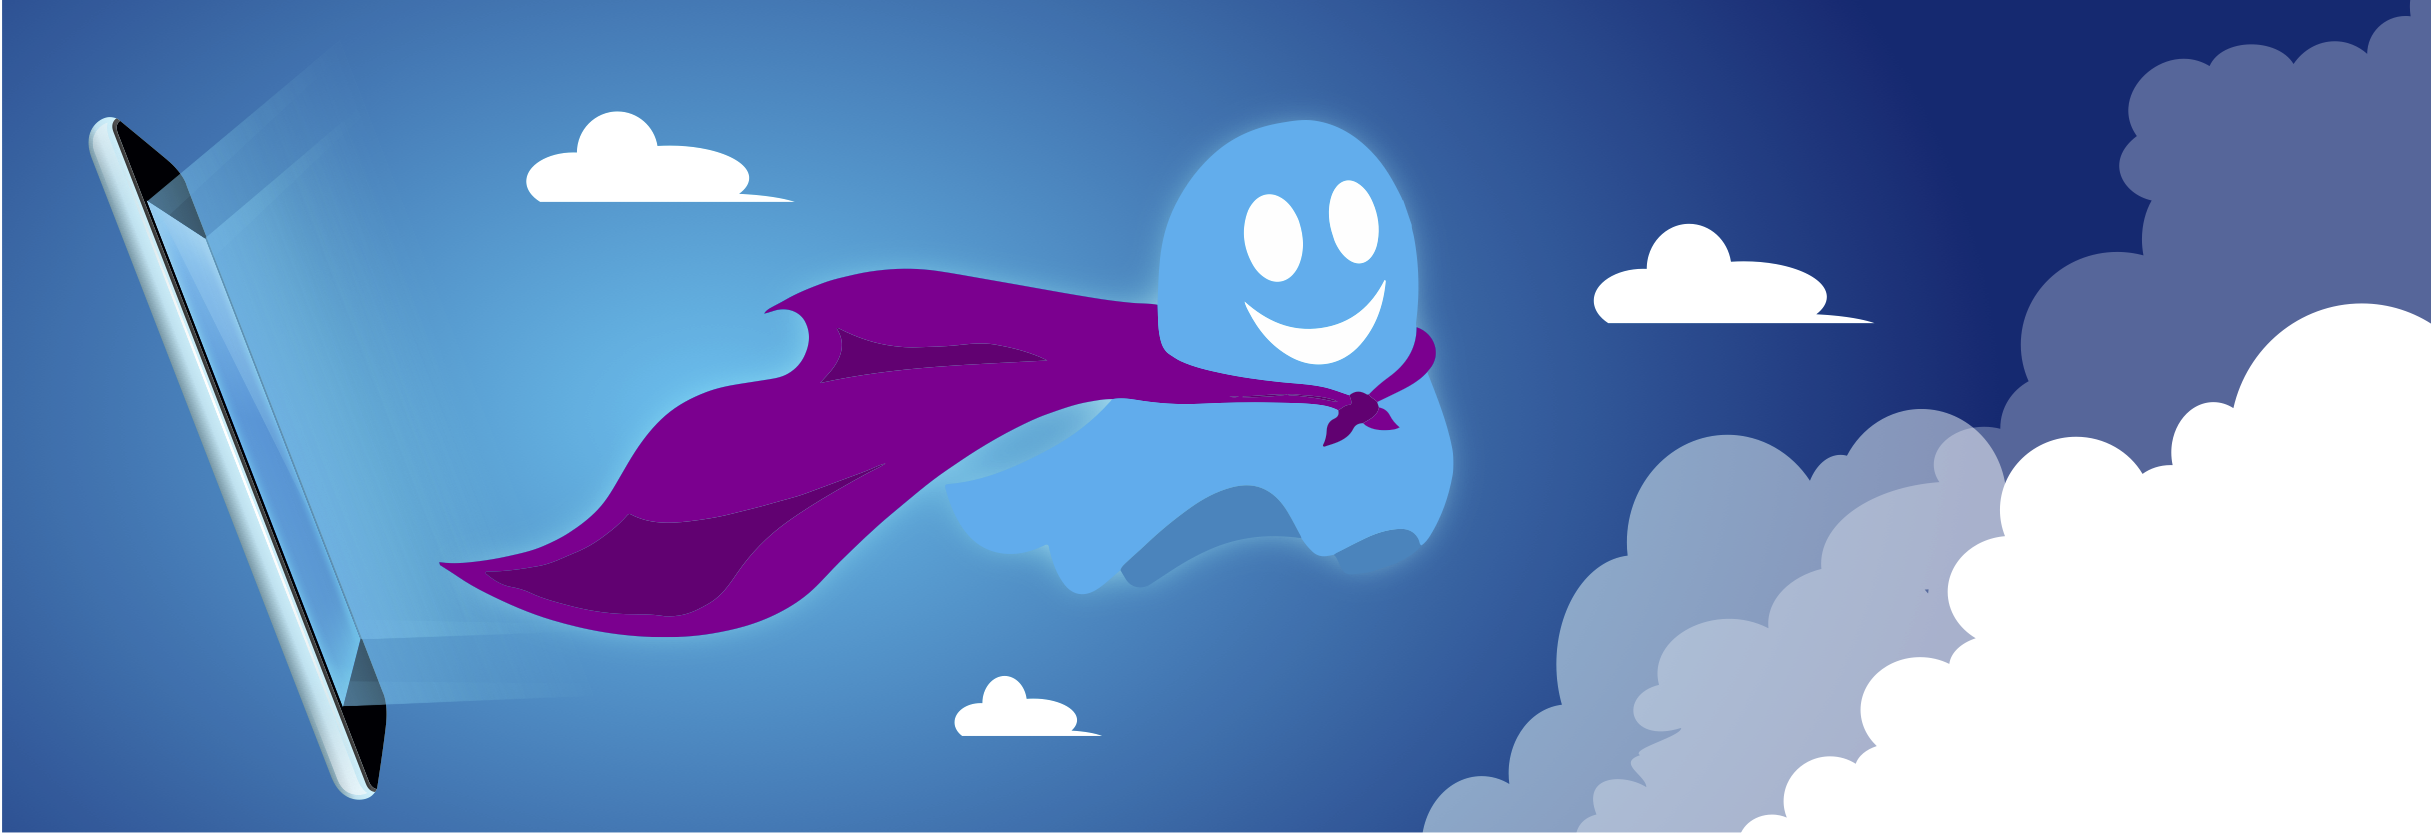 Major Updates to Ghostery Privacy Browser for Android and iOS